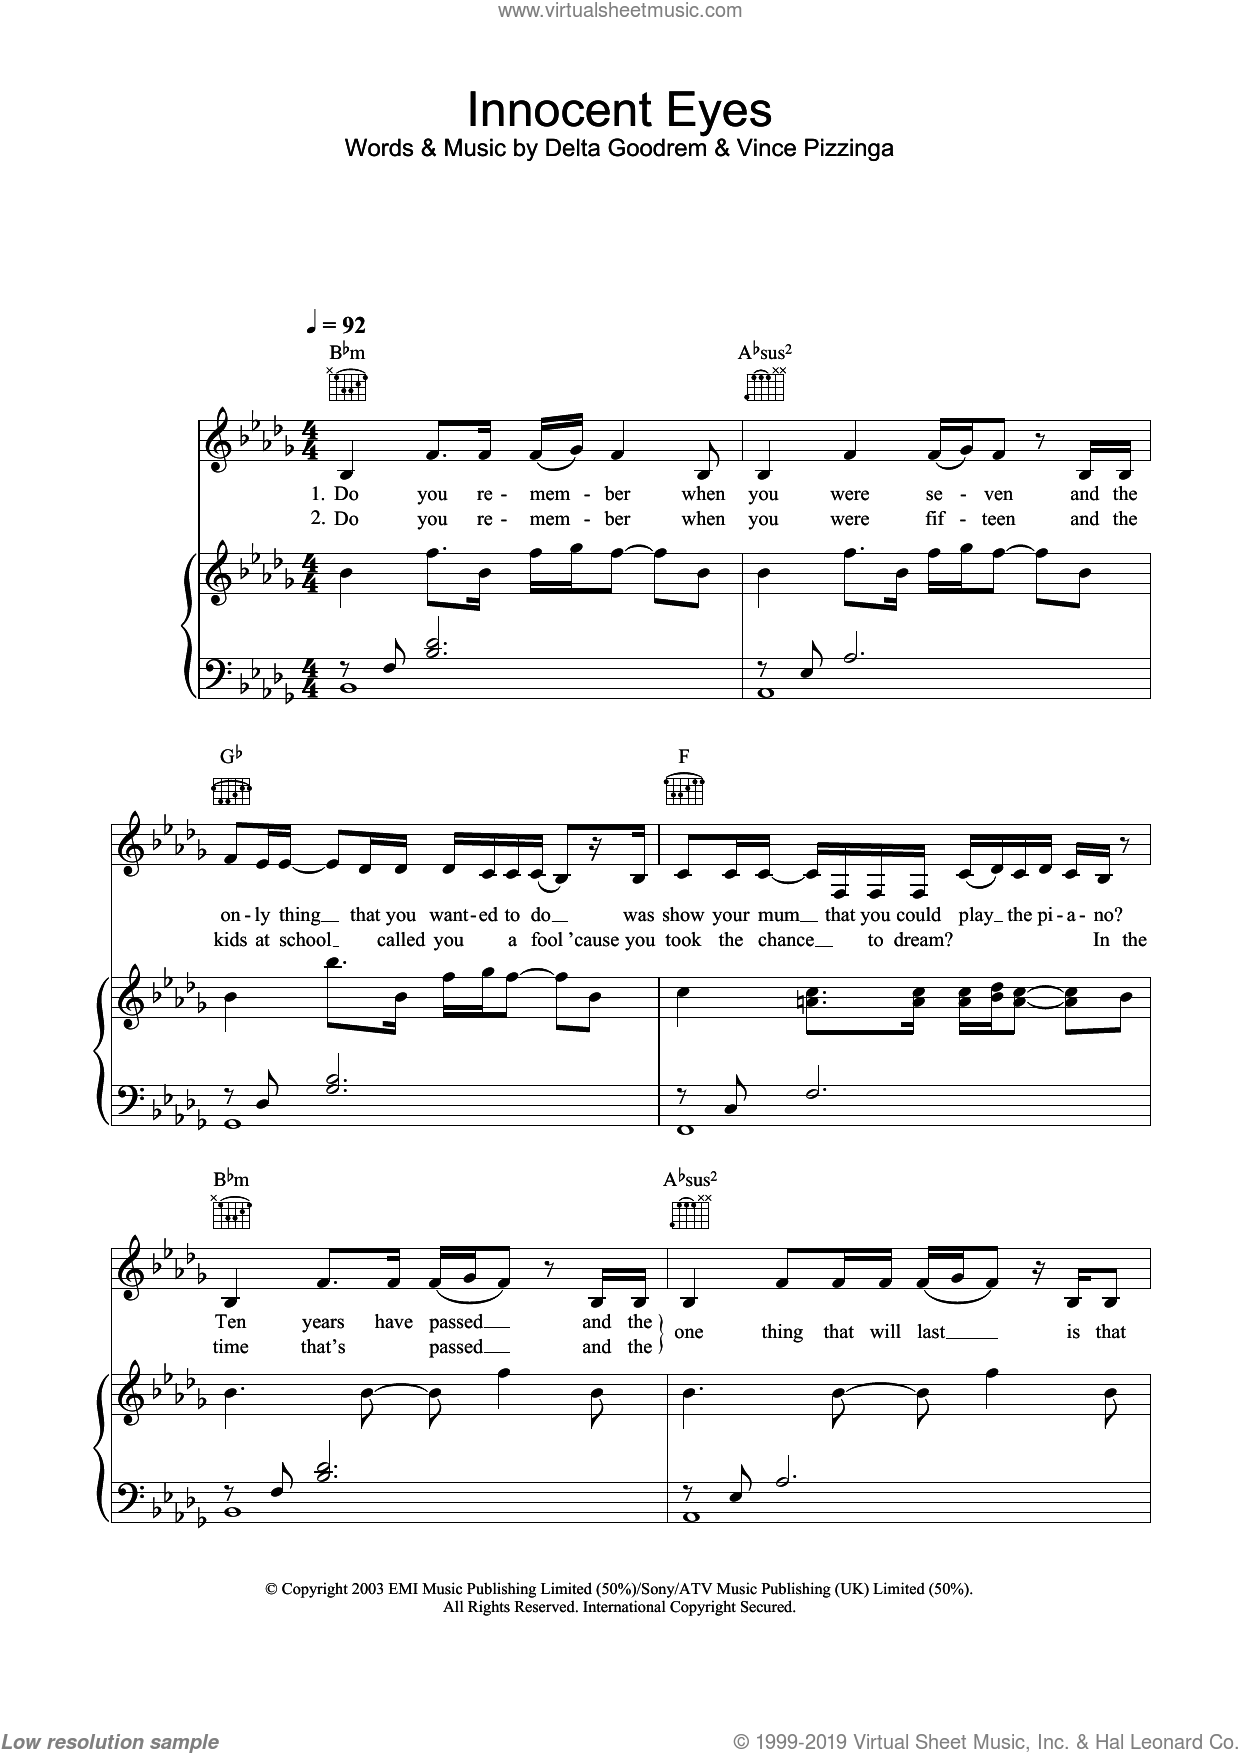 Innocent Eyes sheet music for voice, piano or guitar by Delta Goodrem and Vince Pizzinga, intermediate skill level